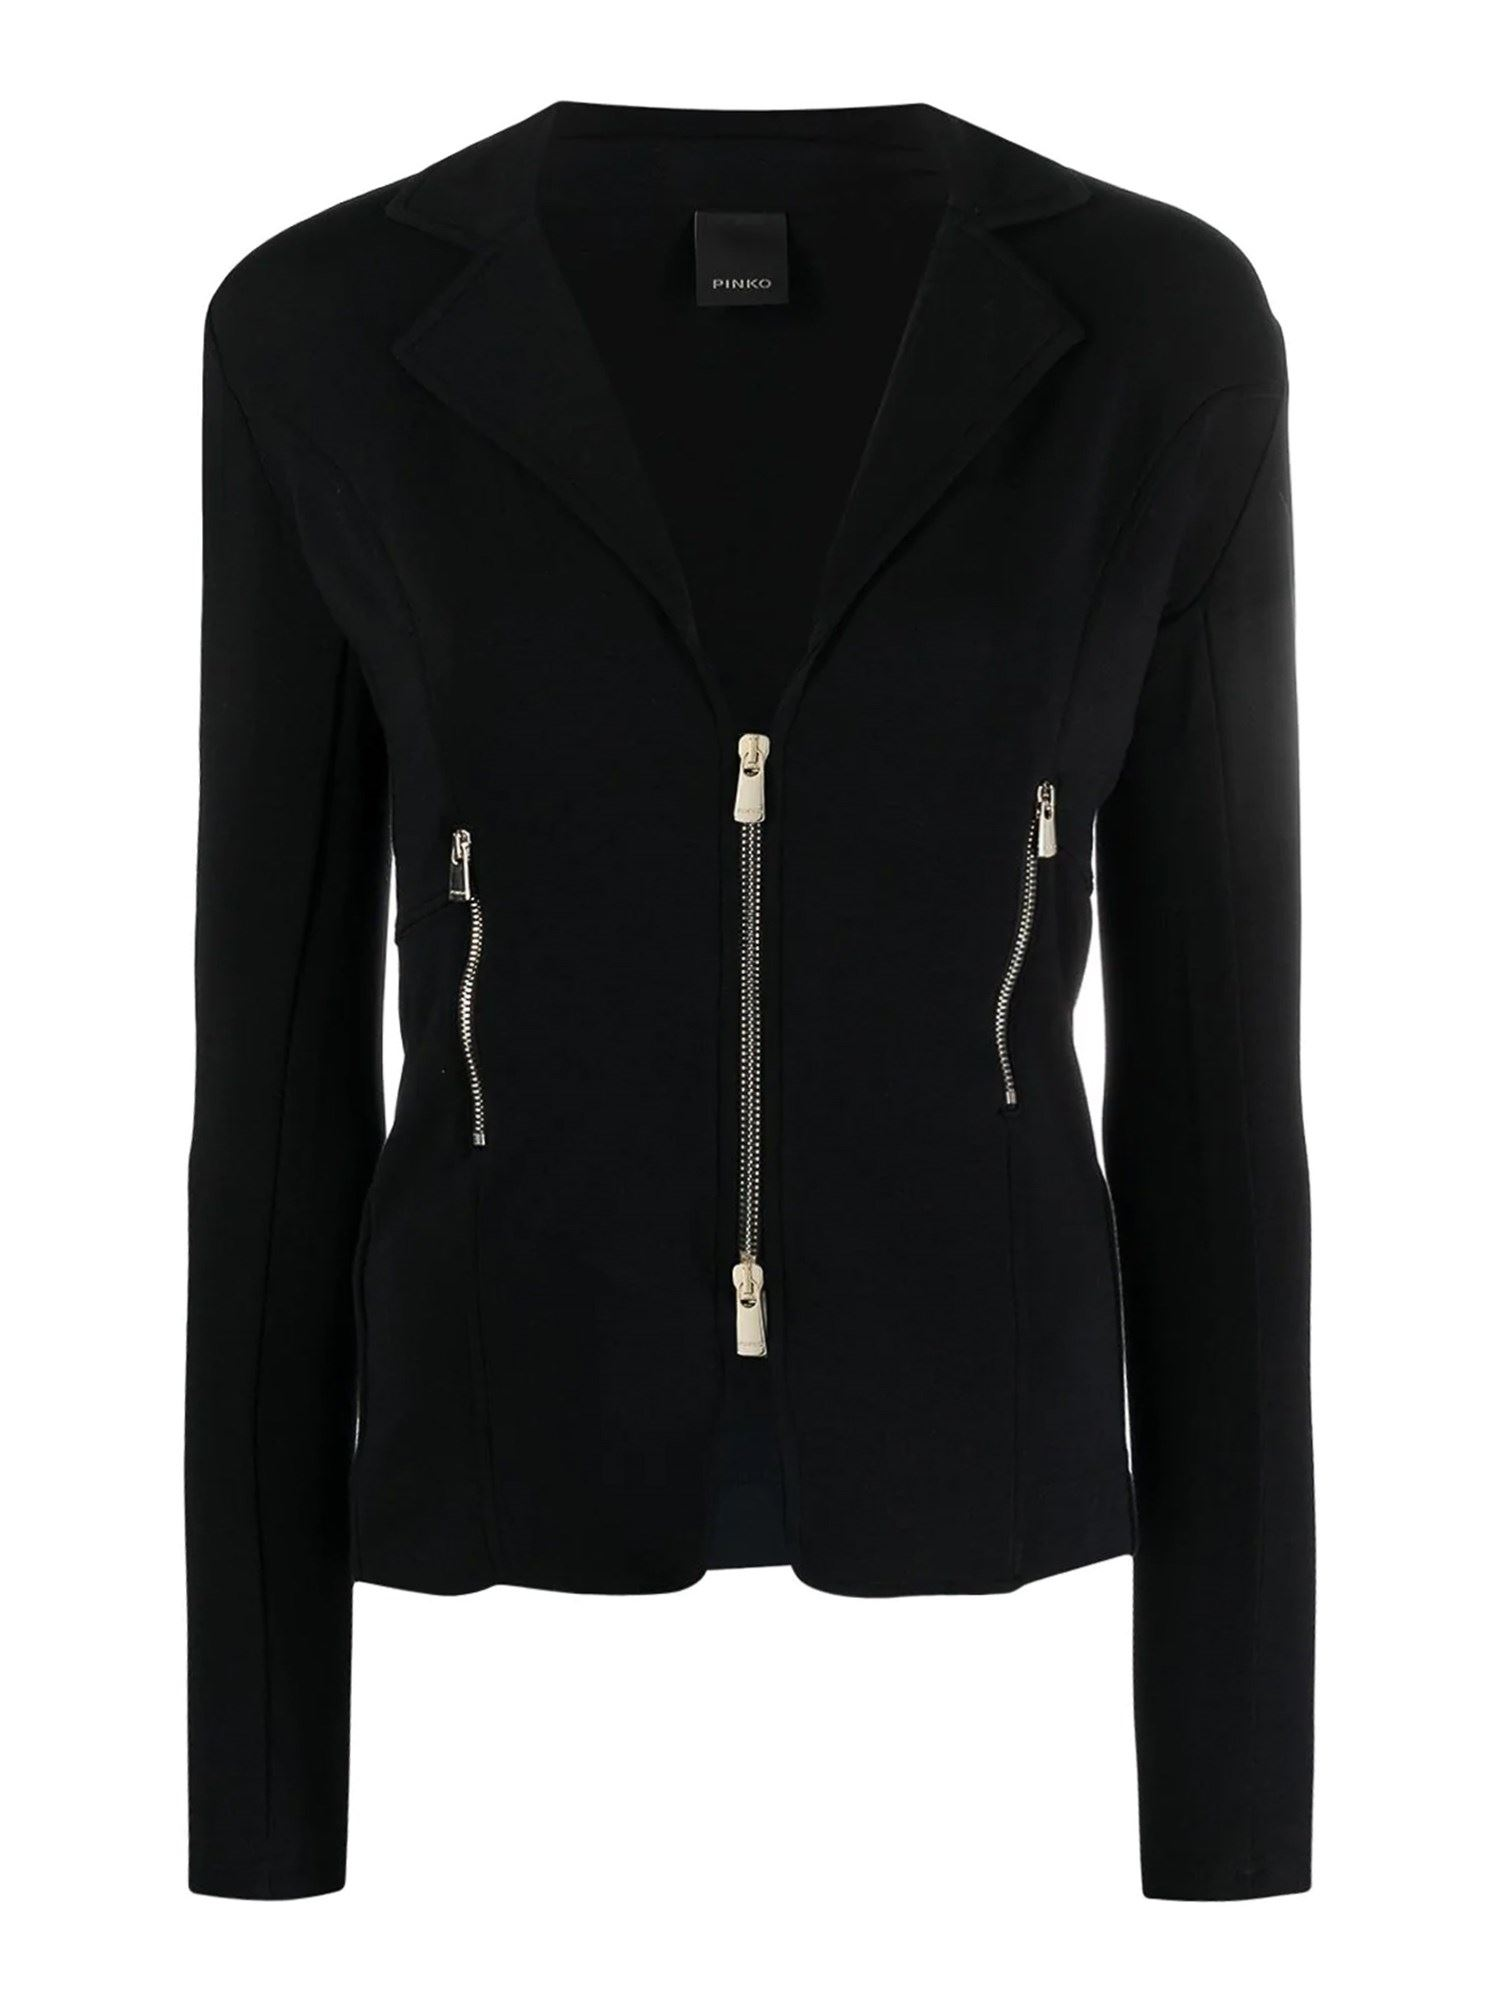 Pinko Blazers PINKO ZIPPED BLAZER IN BLACK